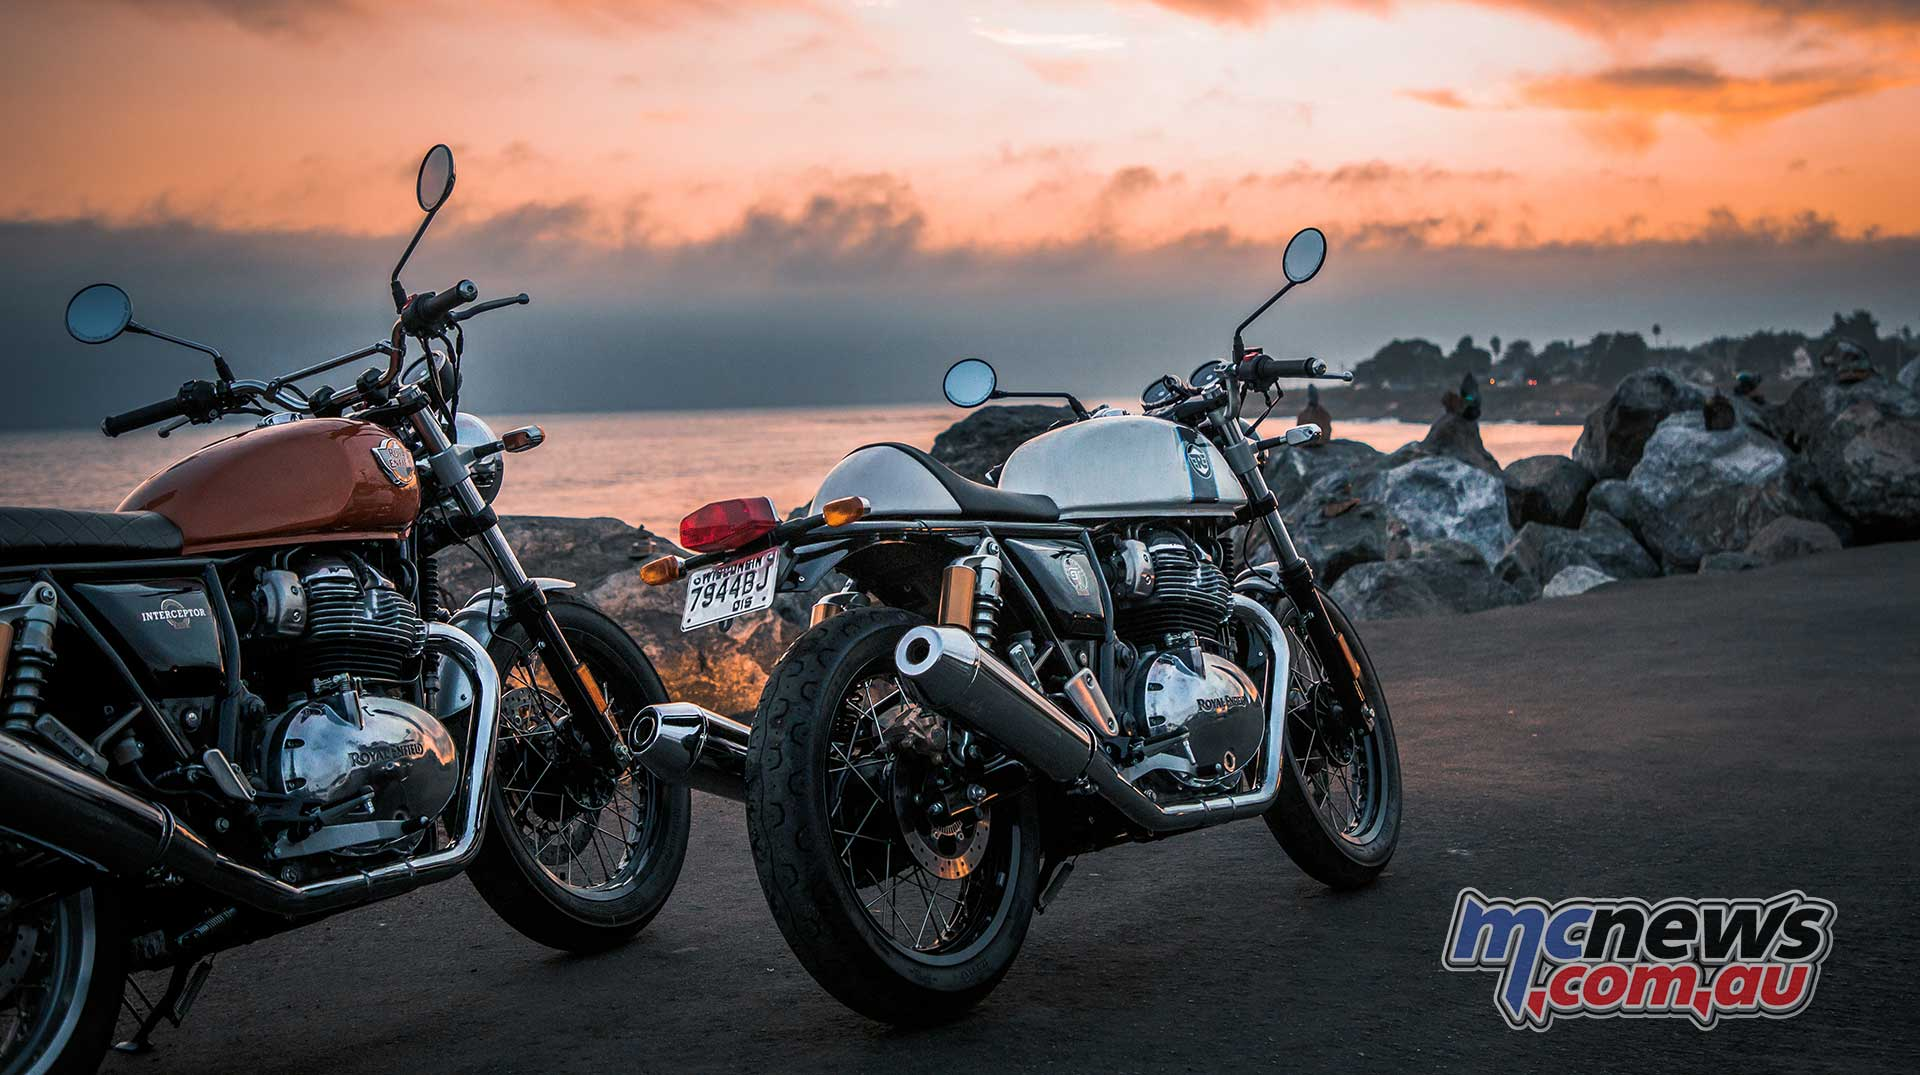 Royal Enfield Confirm Twins Pricing To Start From 8440 Motorcycle News Sport And Reviews